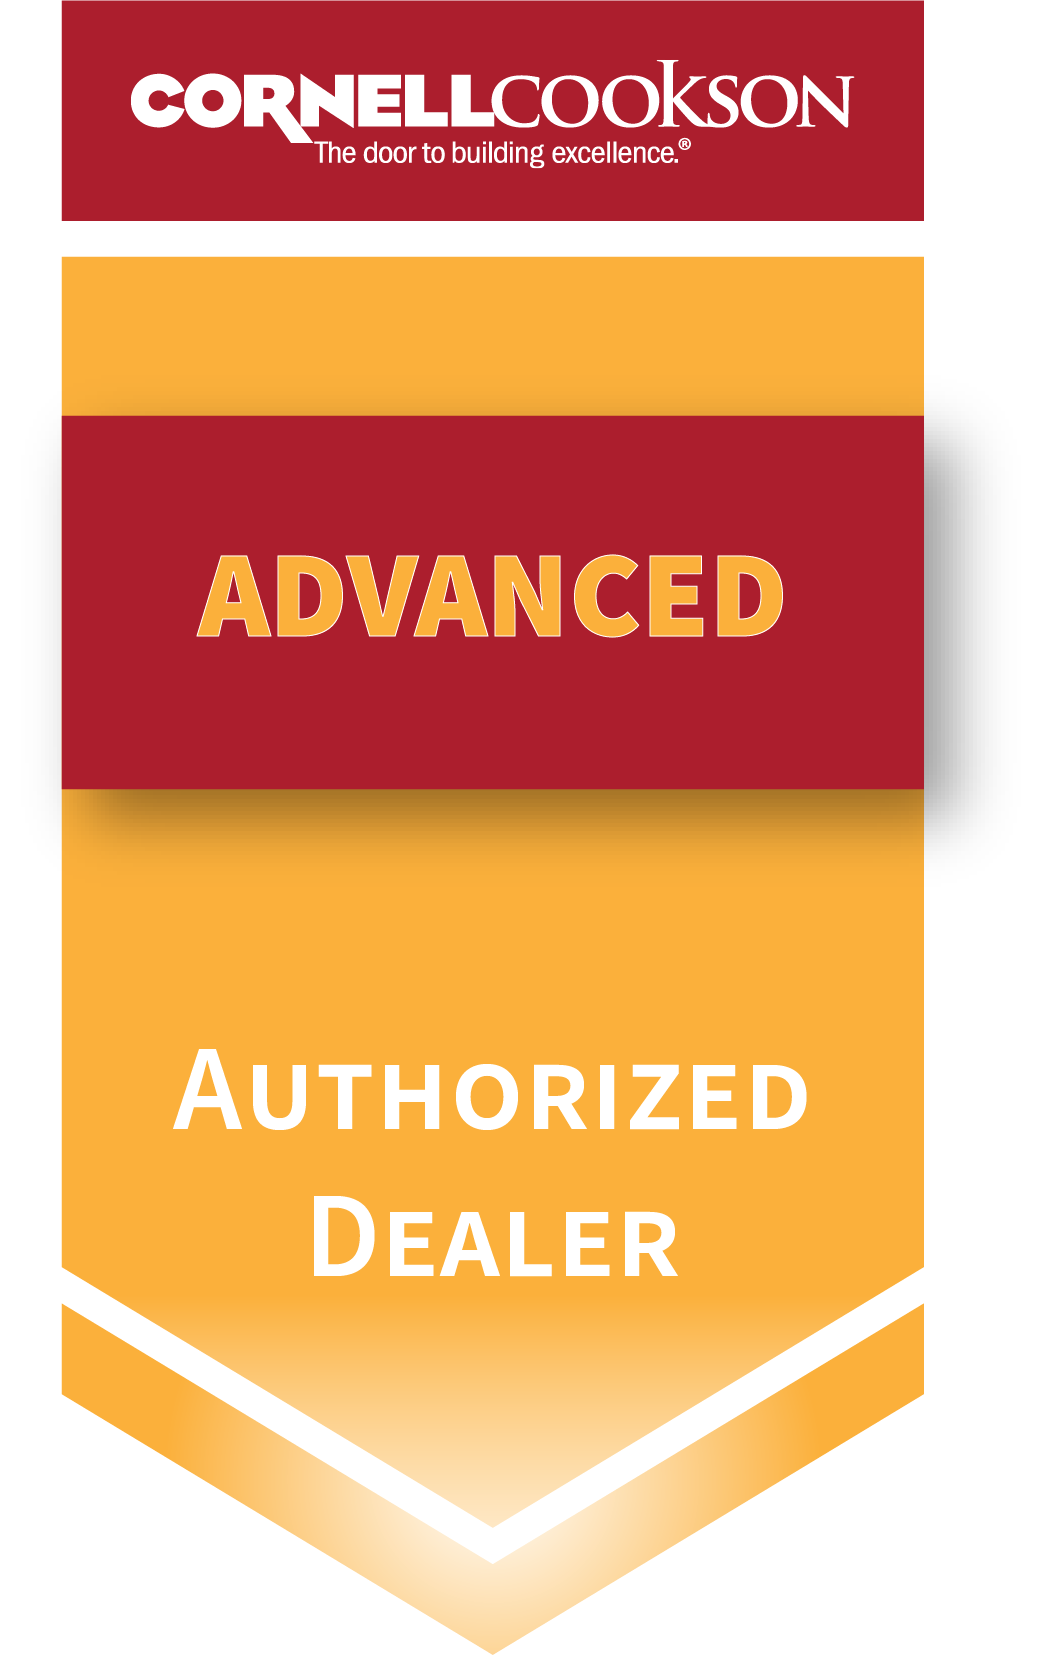 Advanced Dealer